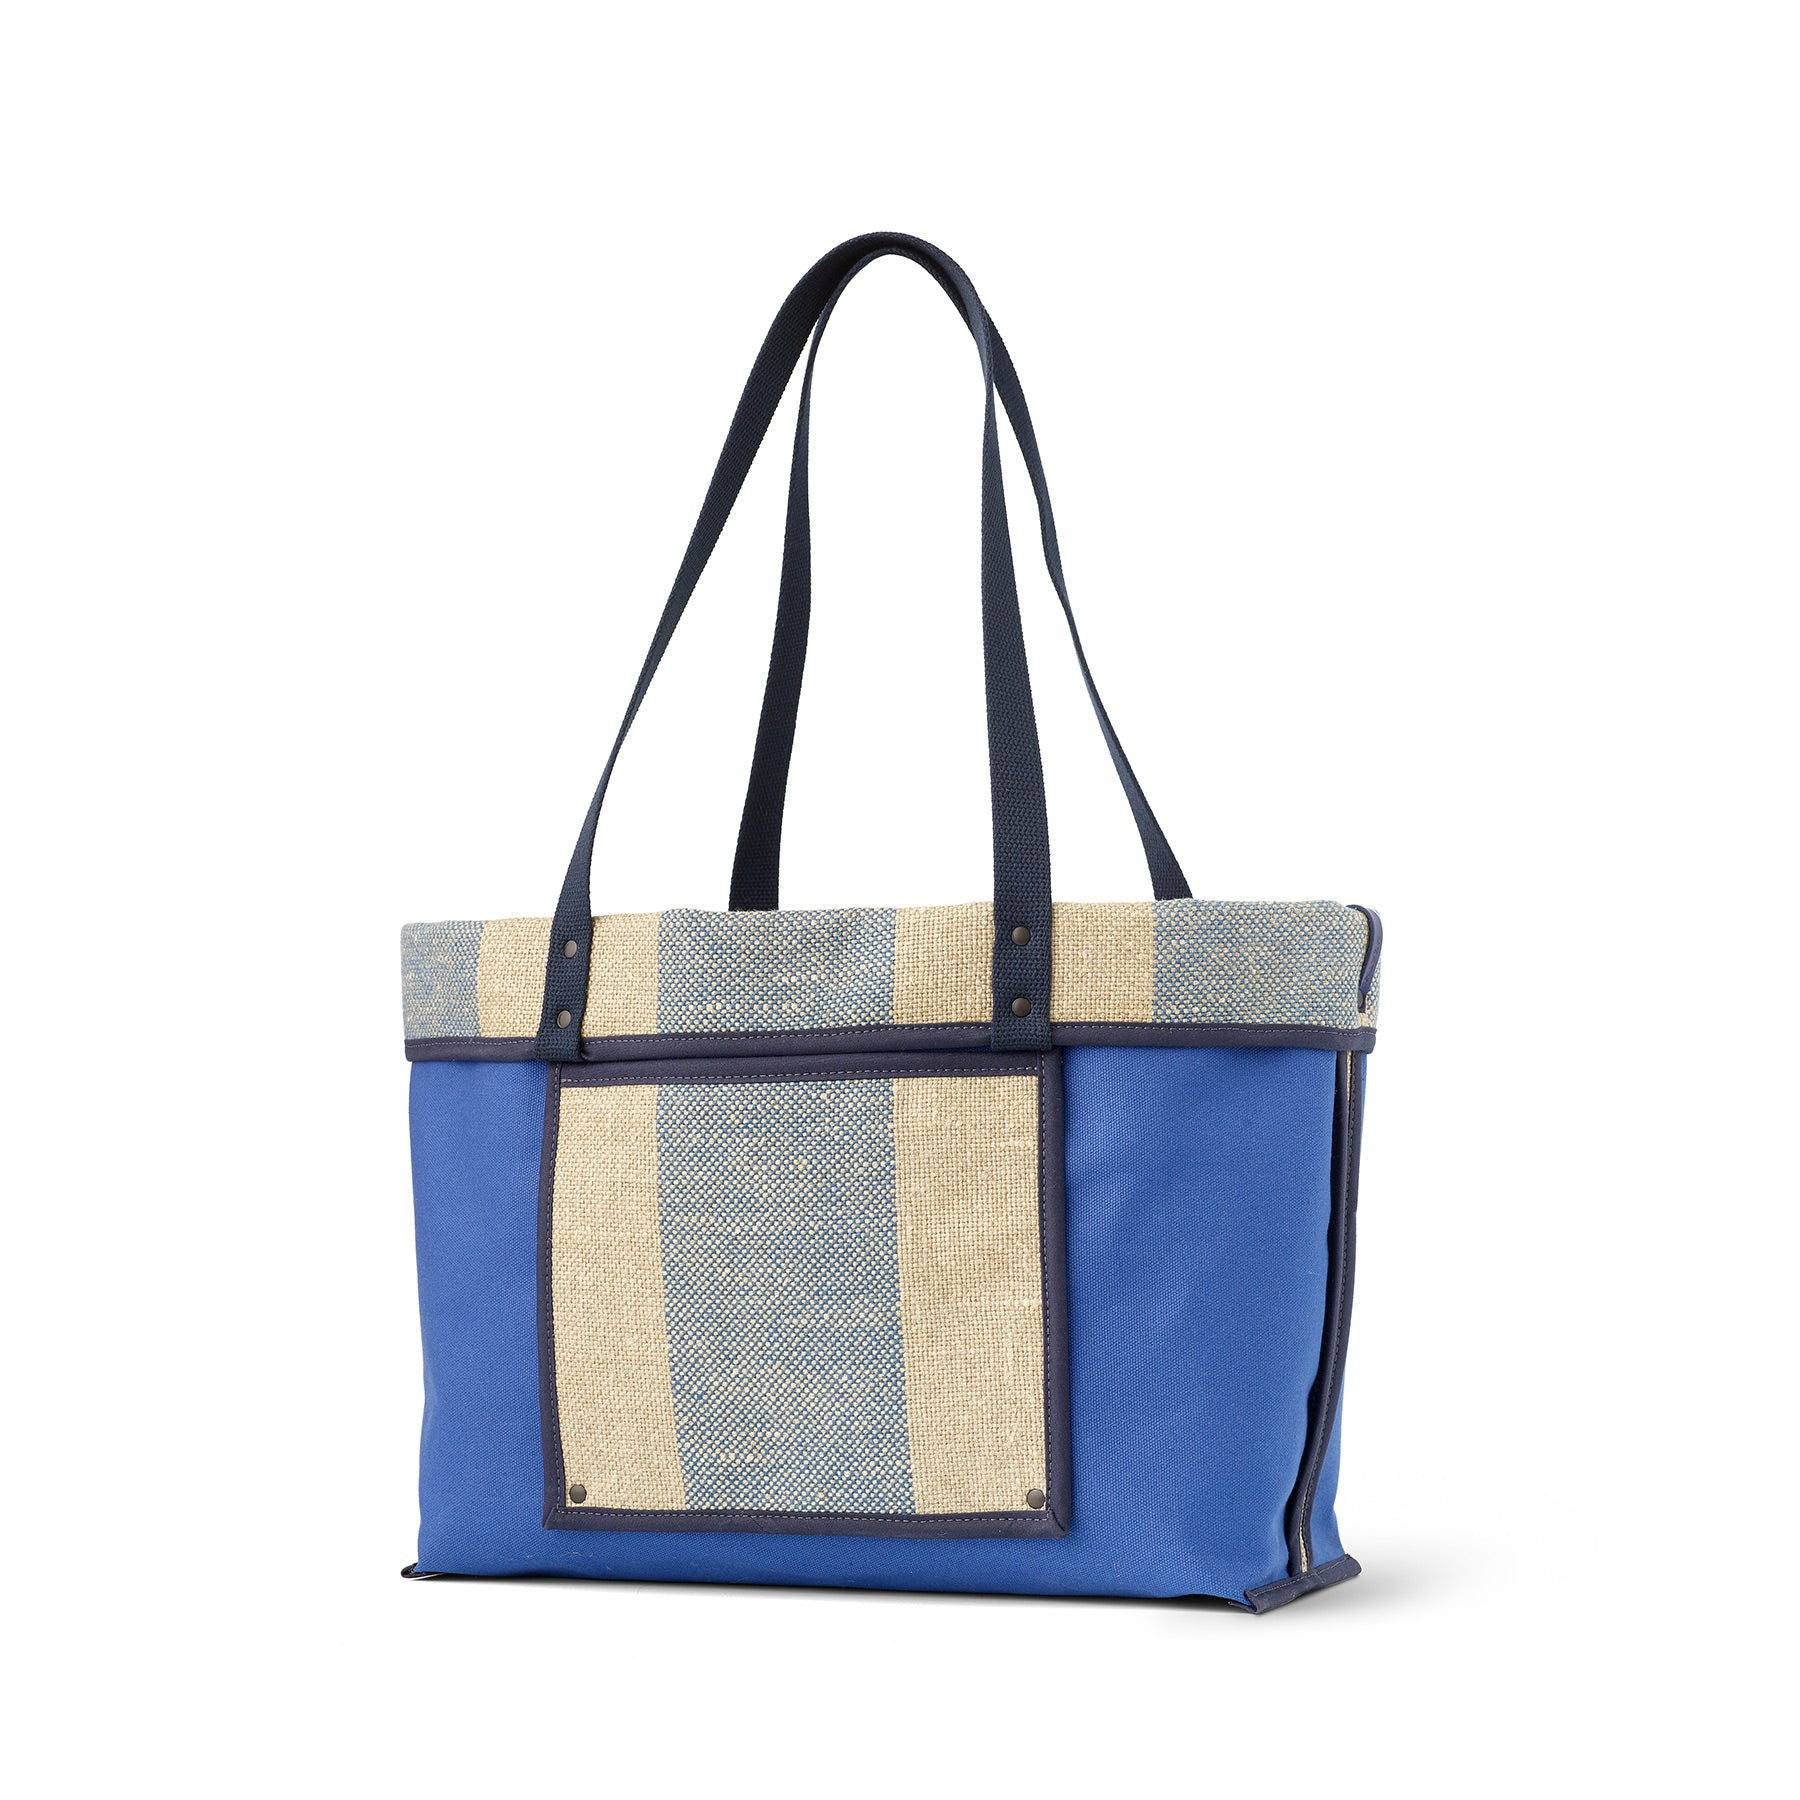 Linen Large Reversible Tote in Marine Zoom Image 1